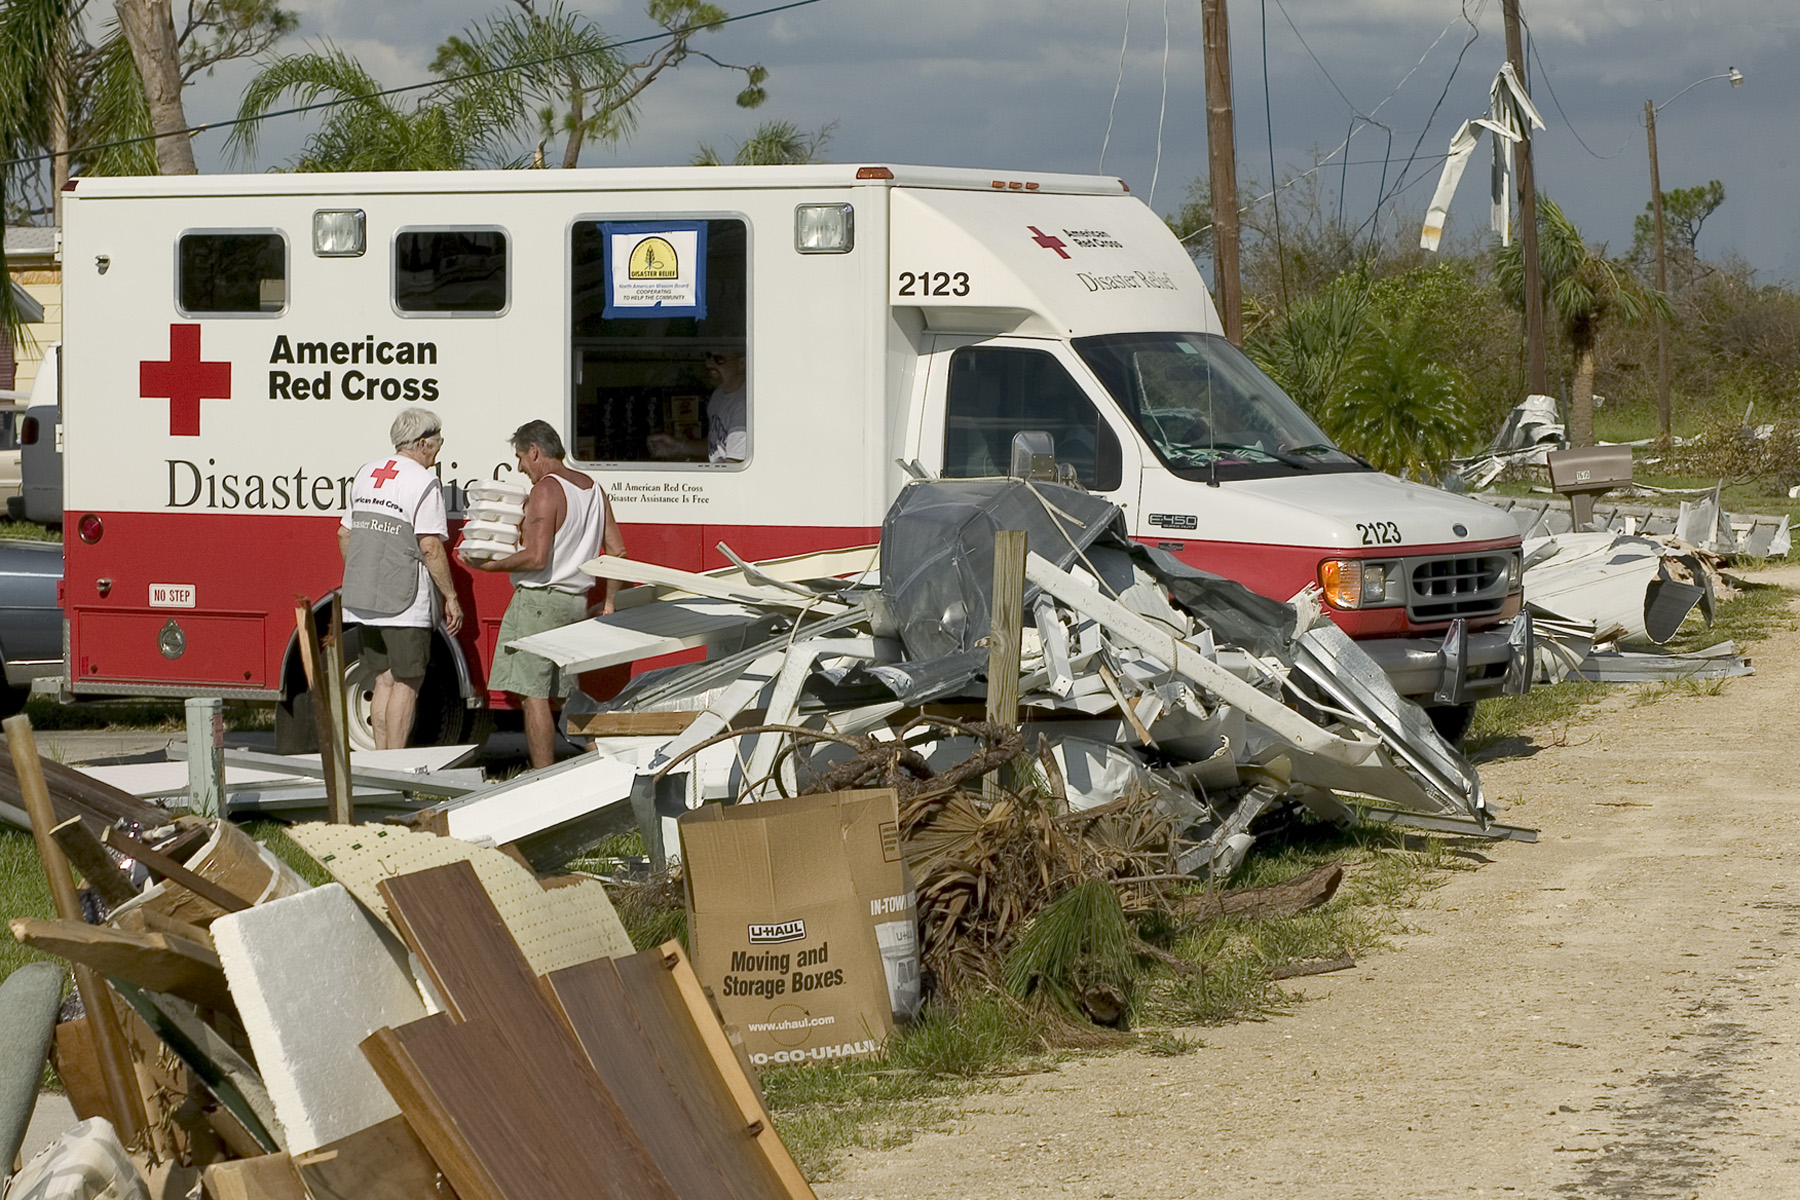 File:FEMA - 10045 - Photograph by Andrea Booher taken on 08-18-